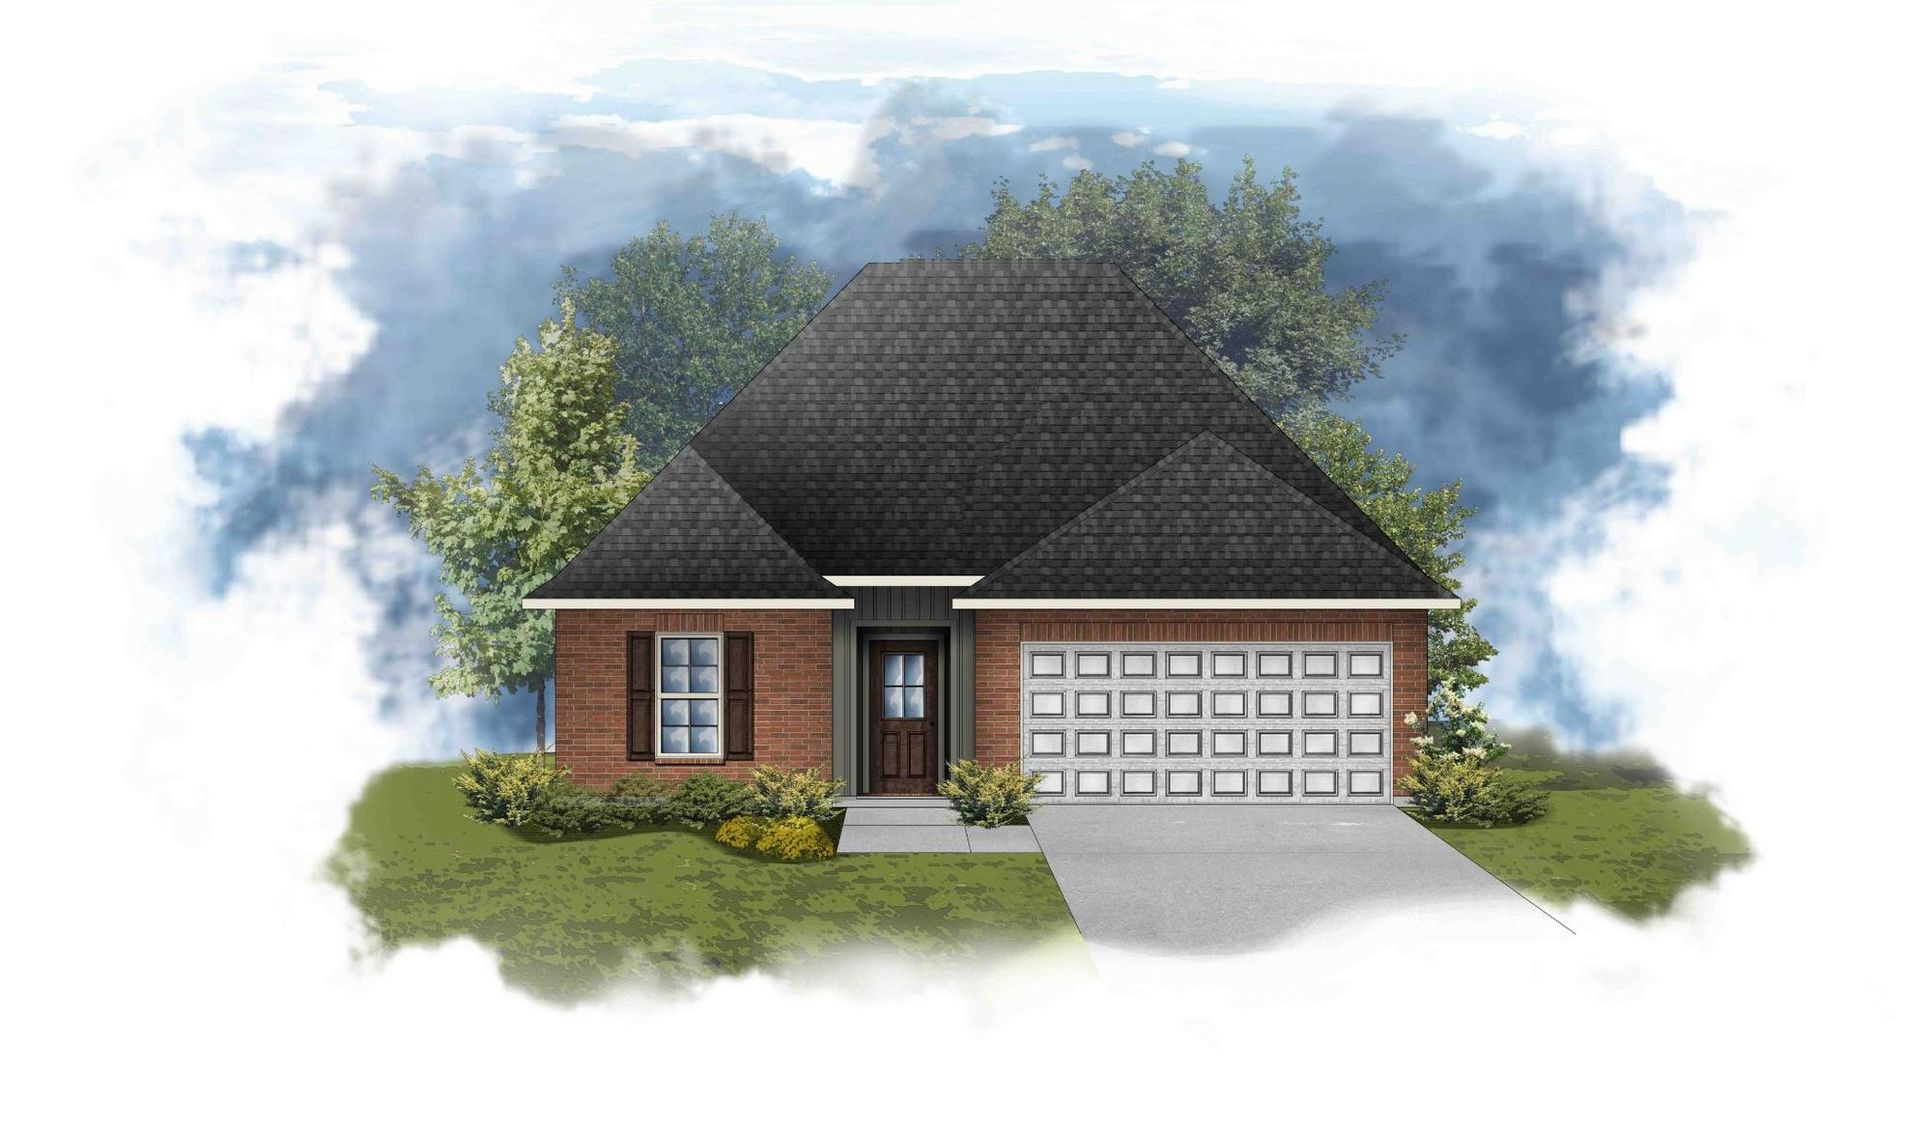 new construction homes in gonzales la in waters cove:Connelly Floor Plan Image - DSLD Homes